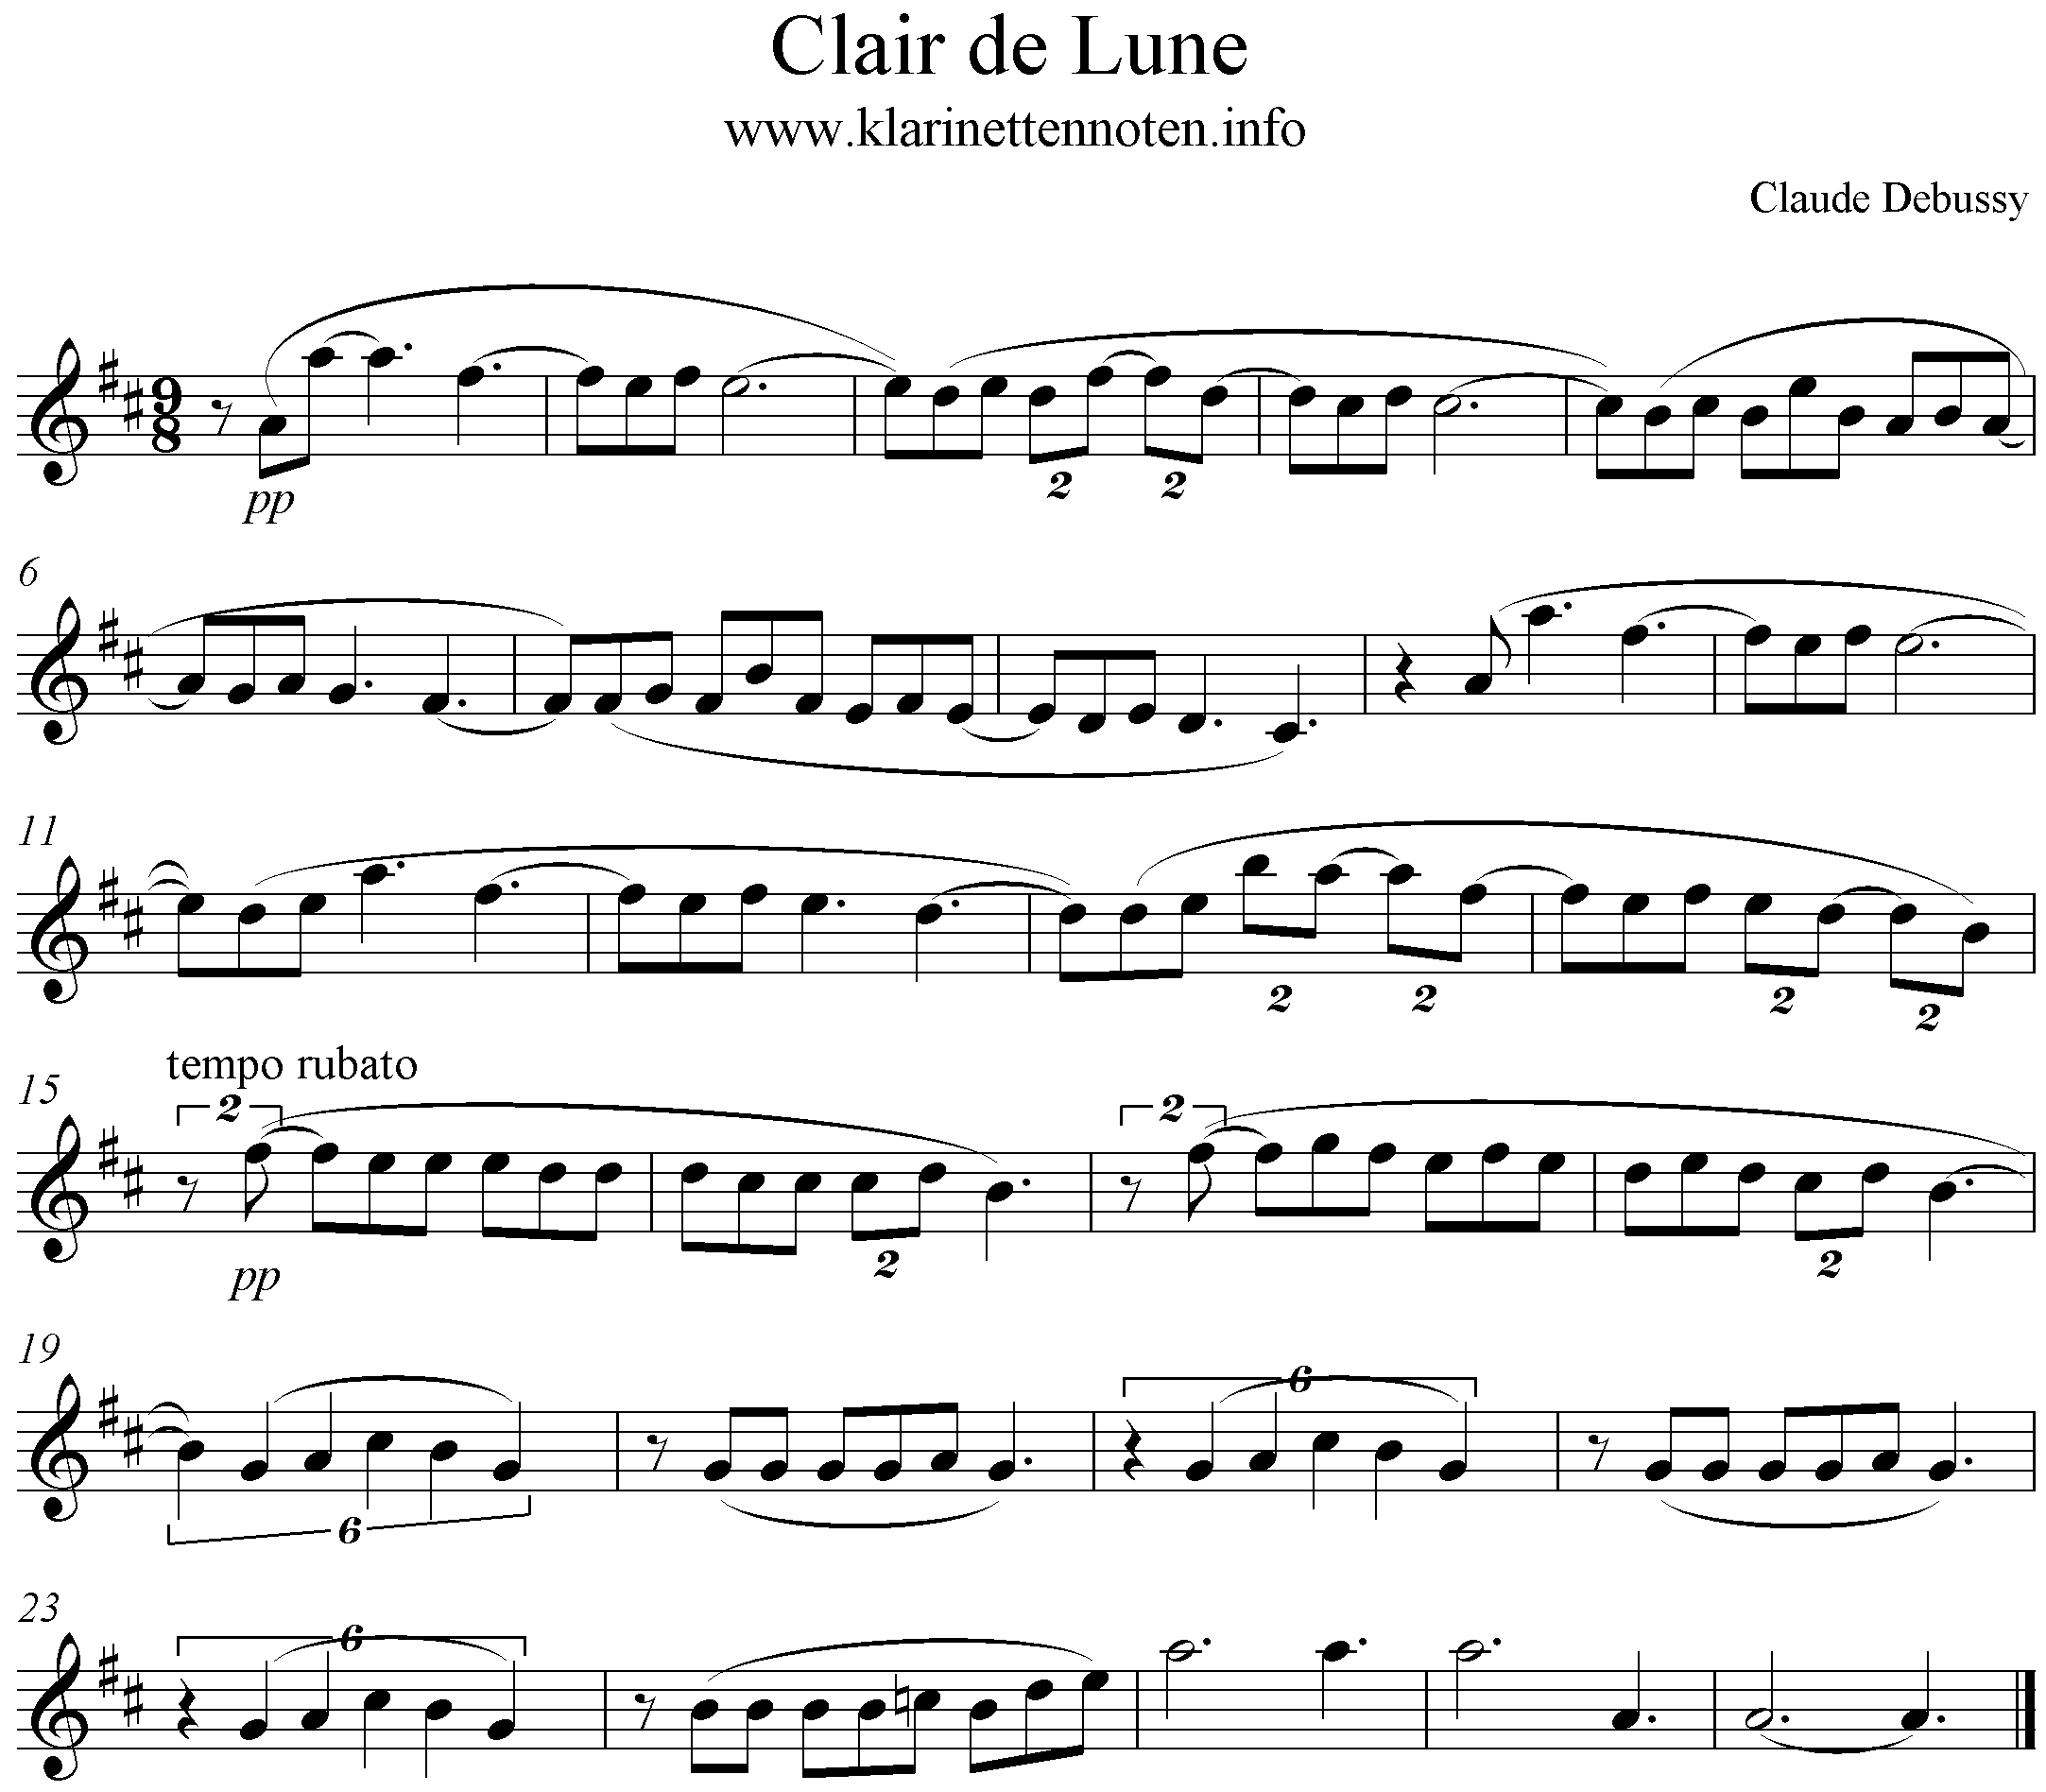 Clair de lune, Debussy, D-Major, Clarinet, Solo, Klarinette